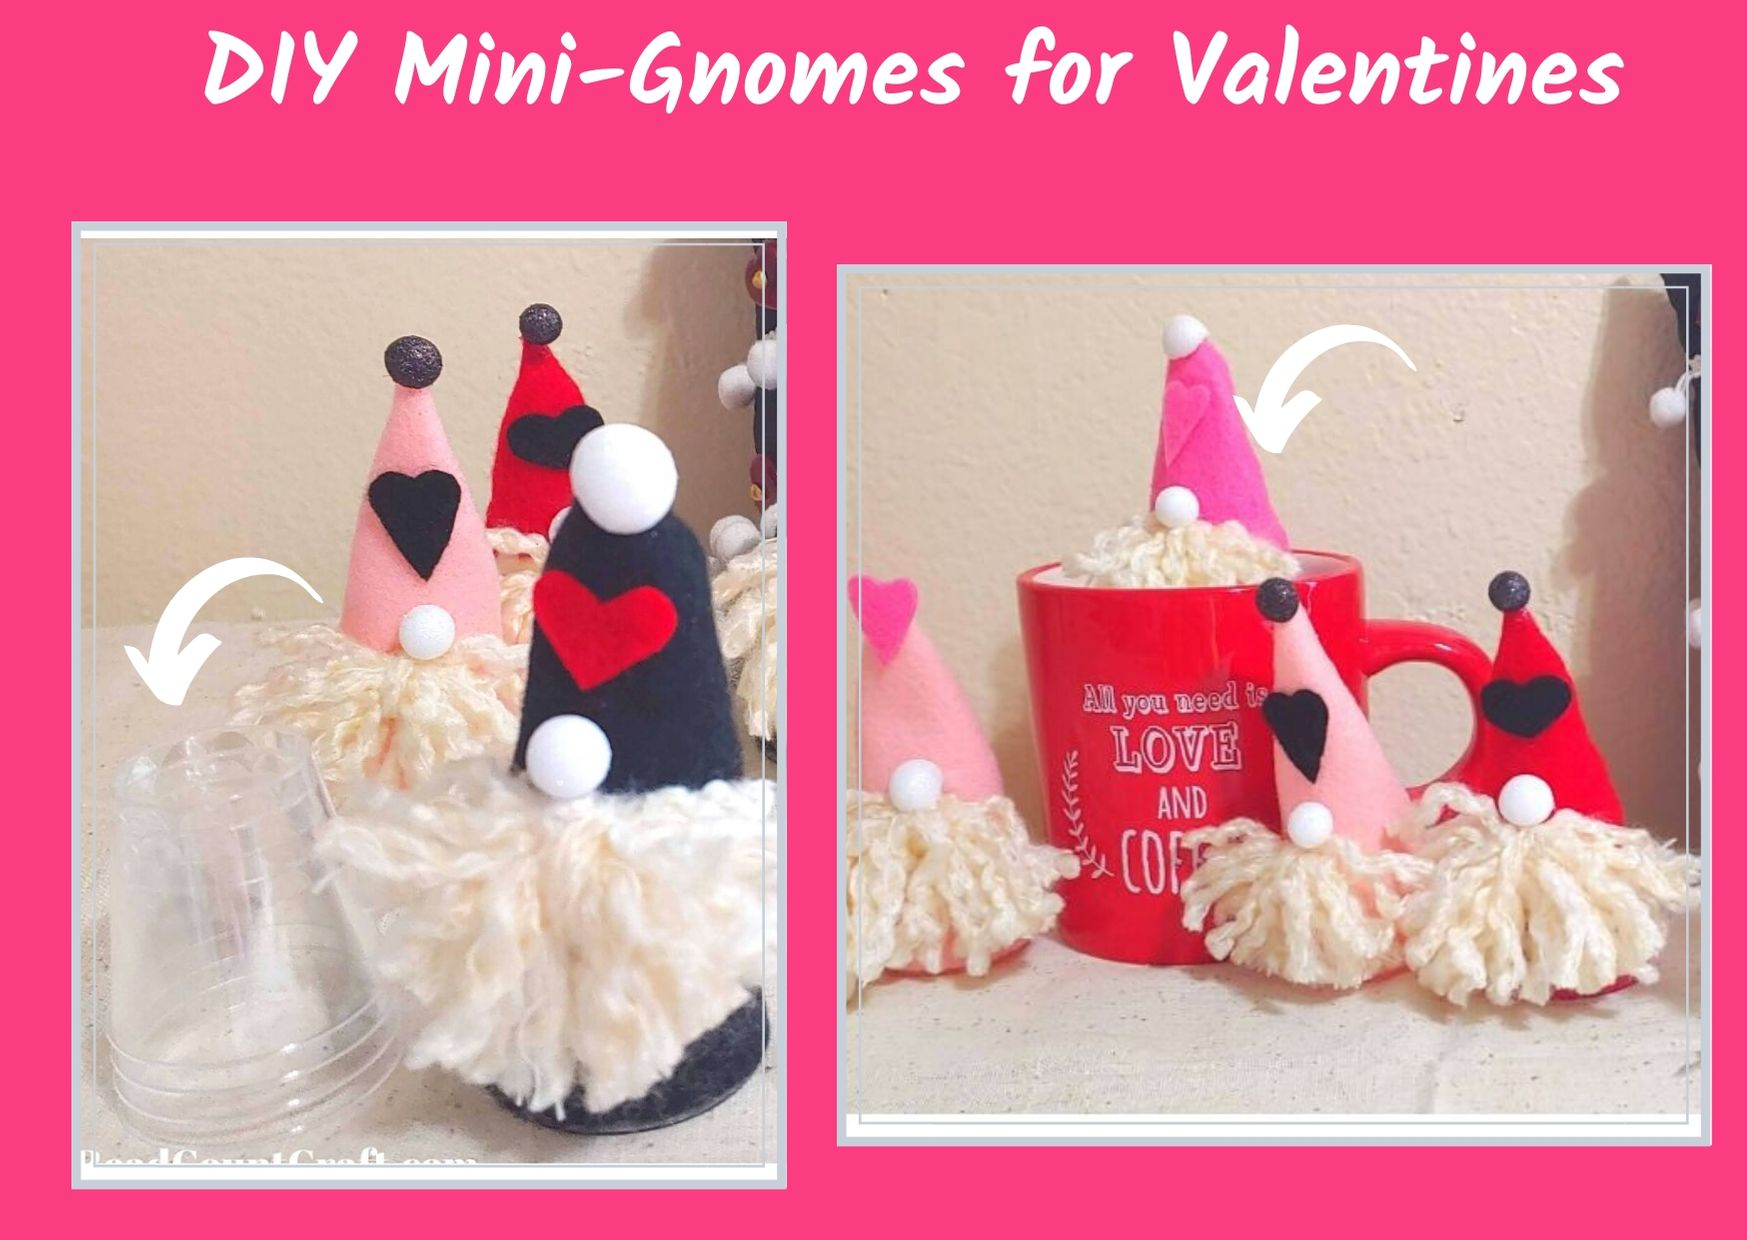 DIY Mini-Gnomes for Valentine's Day